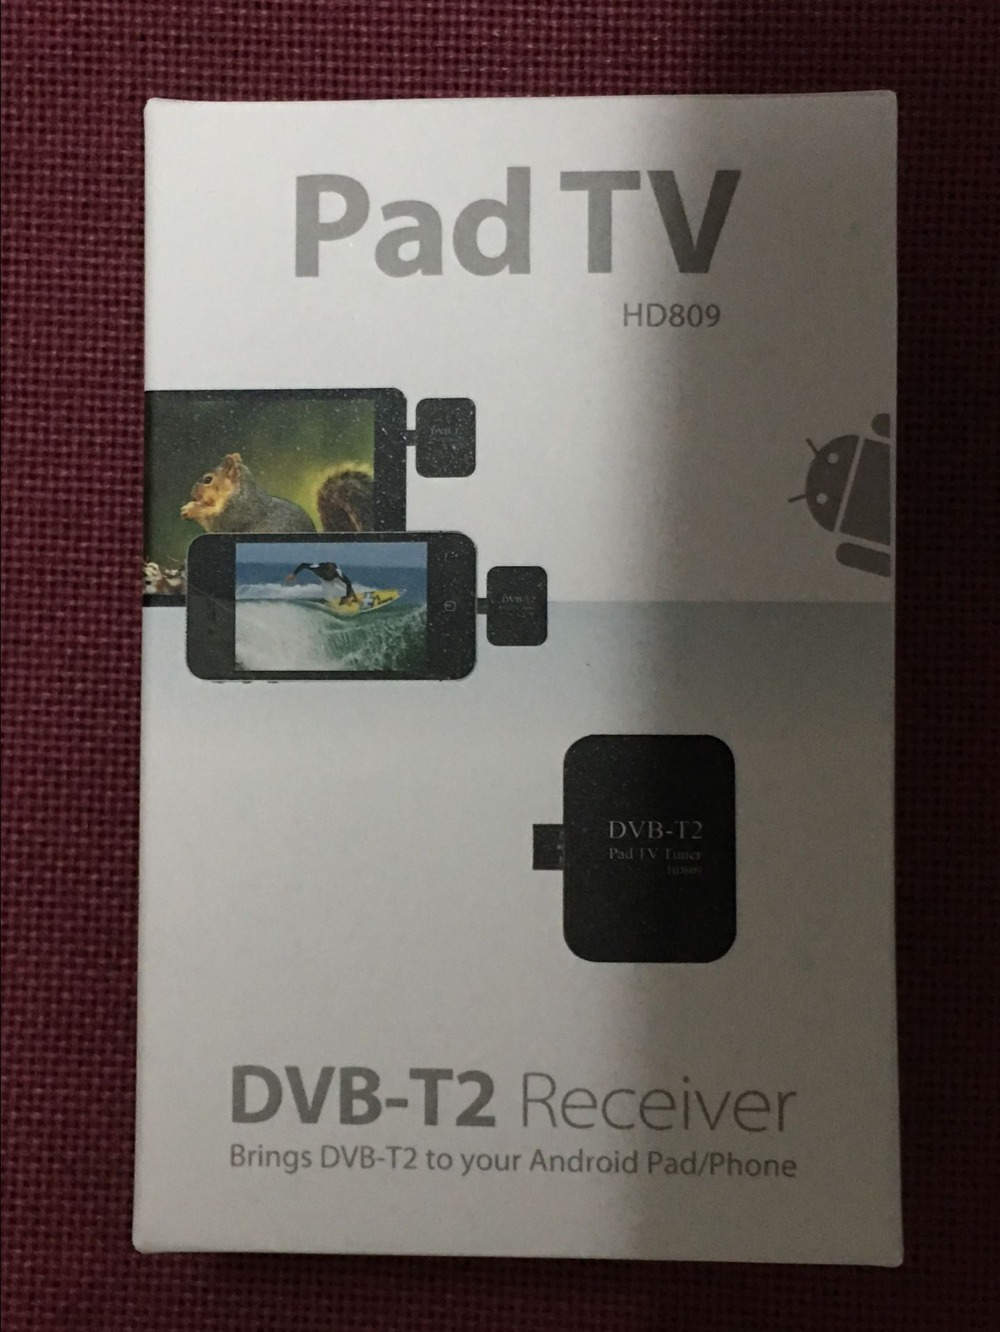 2017 new micro USB2.0 1080P DVB-T2 TV dongle DVB-T2 TV stick DVB-T TV receiver for android mobile phone tablet PC with box